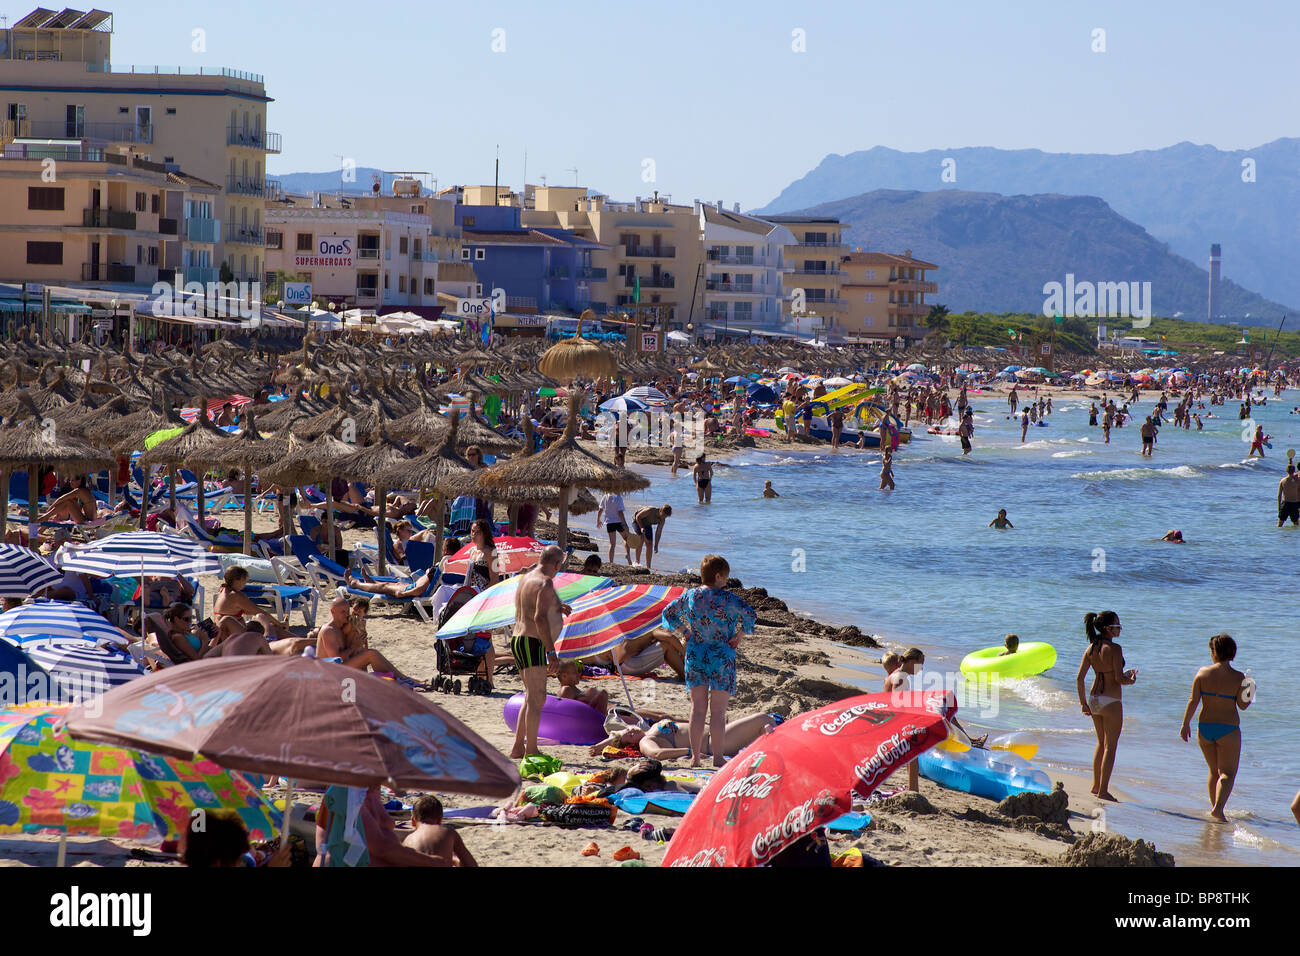 beach crowded Can Picafort - Stock Image